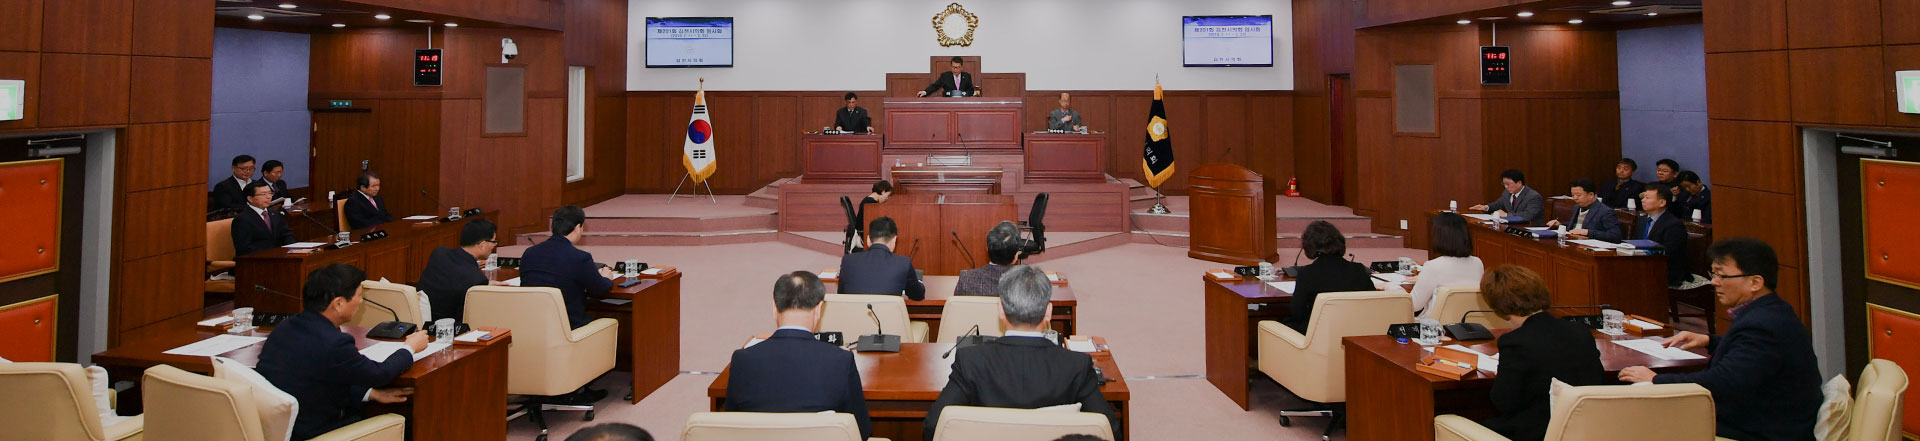 GIMCHEON COUNCIL